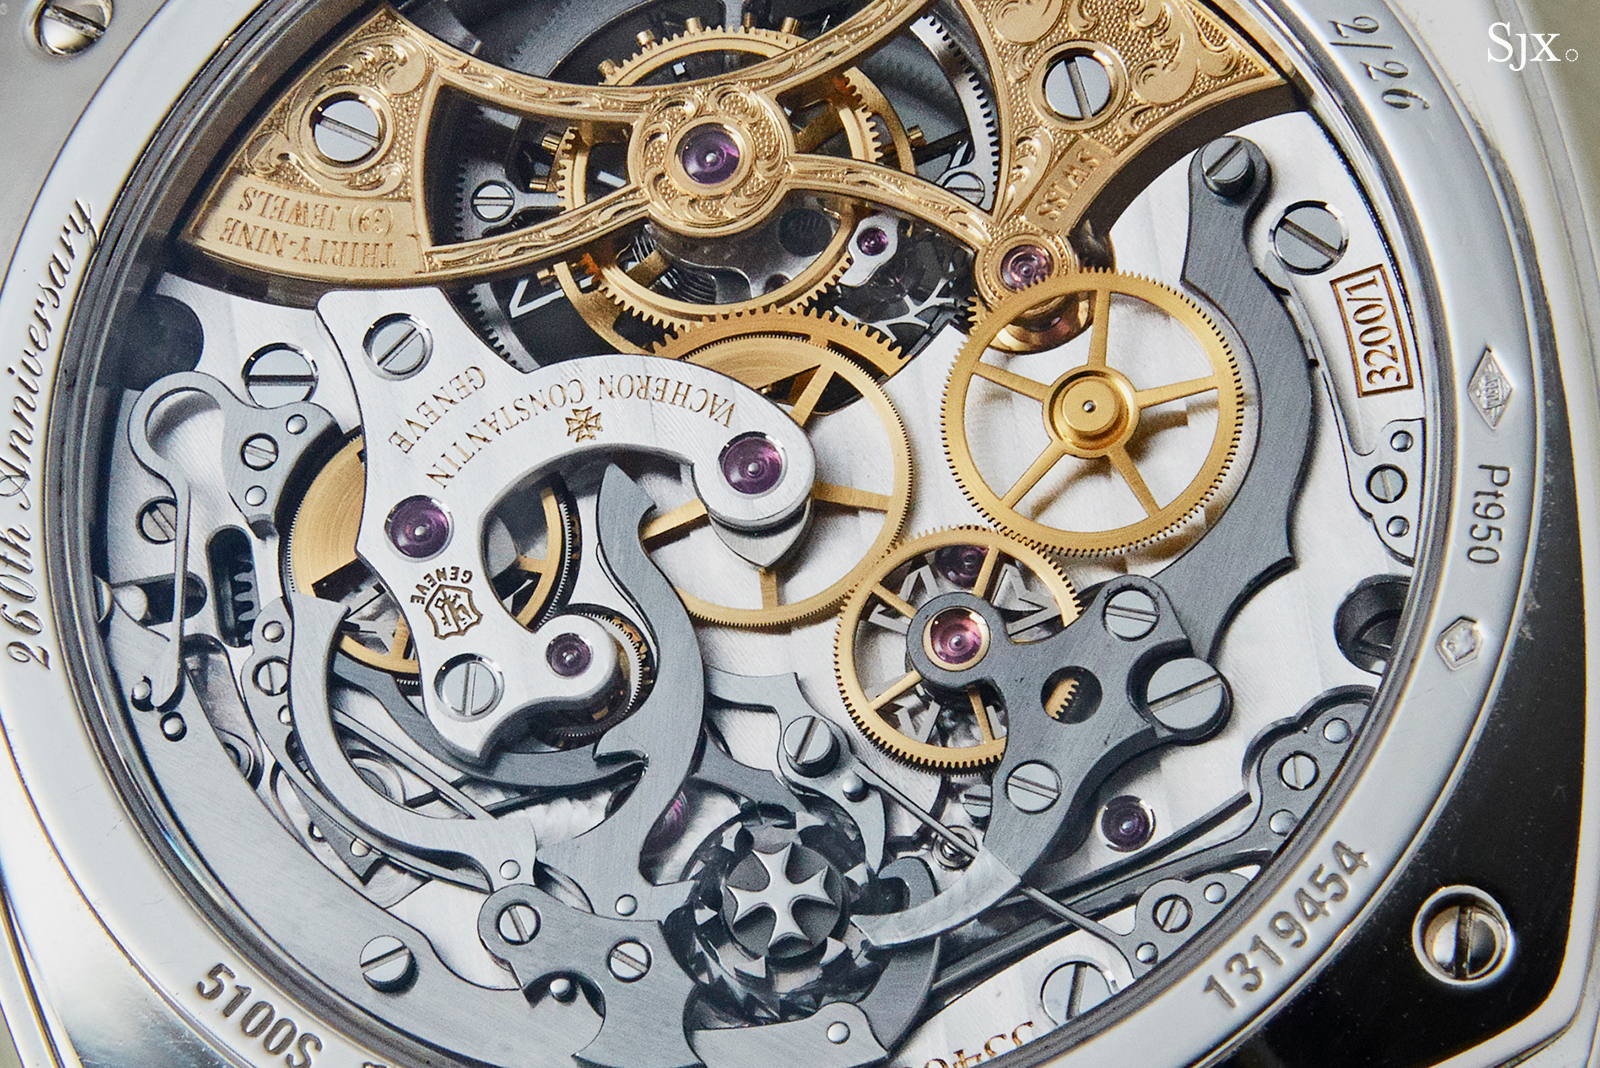 Vacheron Constantin Harmony Chronograph Tourbillon 260th Anniversary back 3